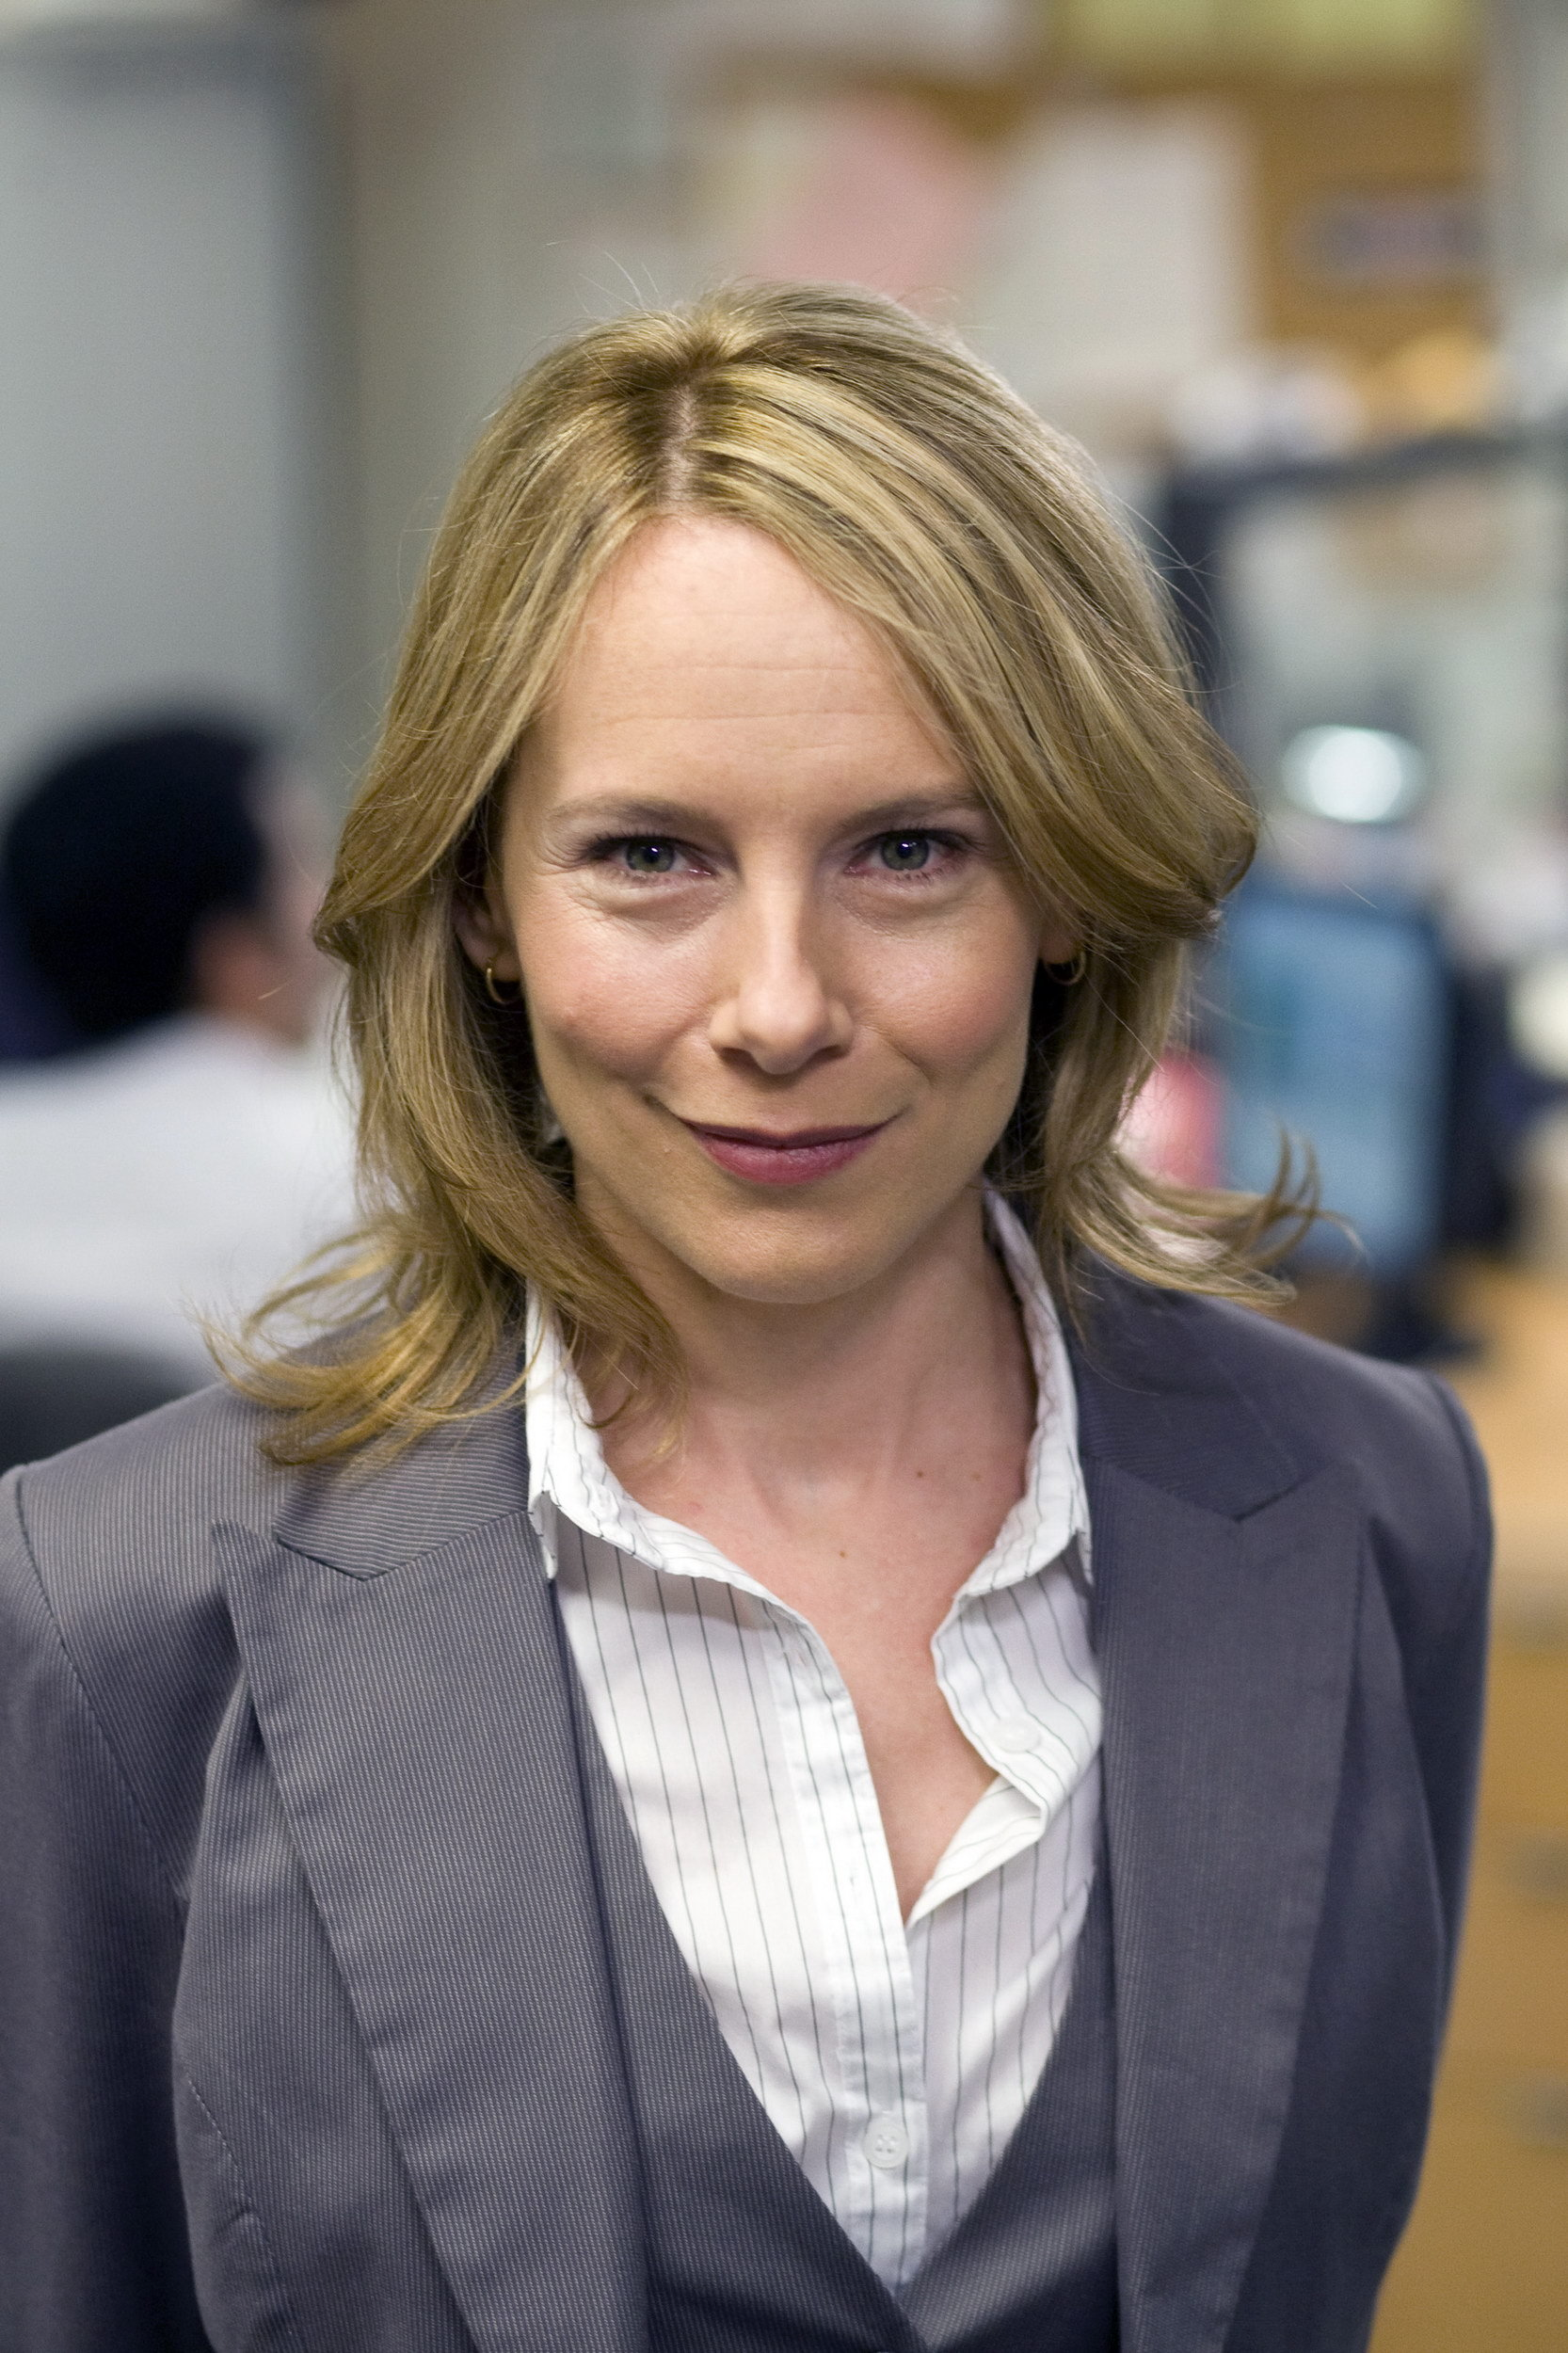 File:Holly Flax.jpg